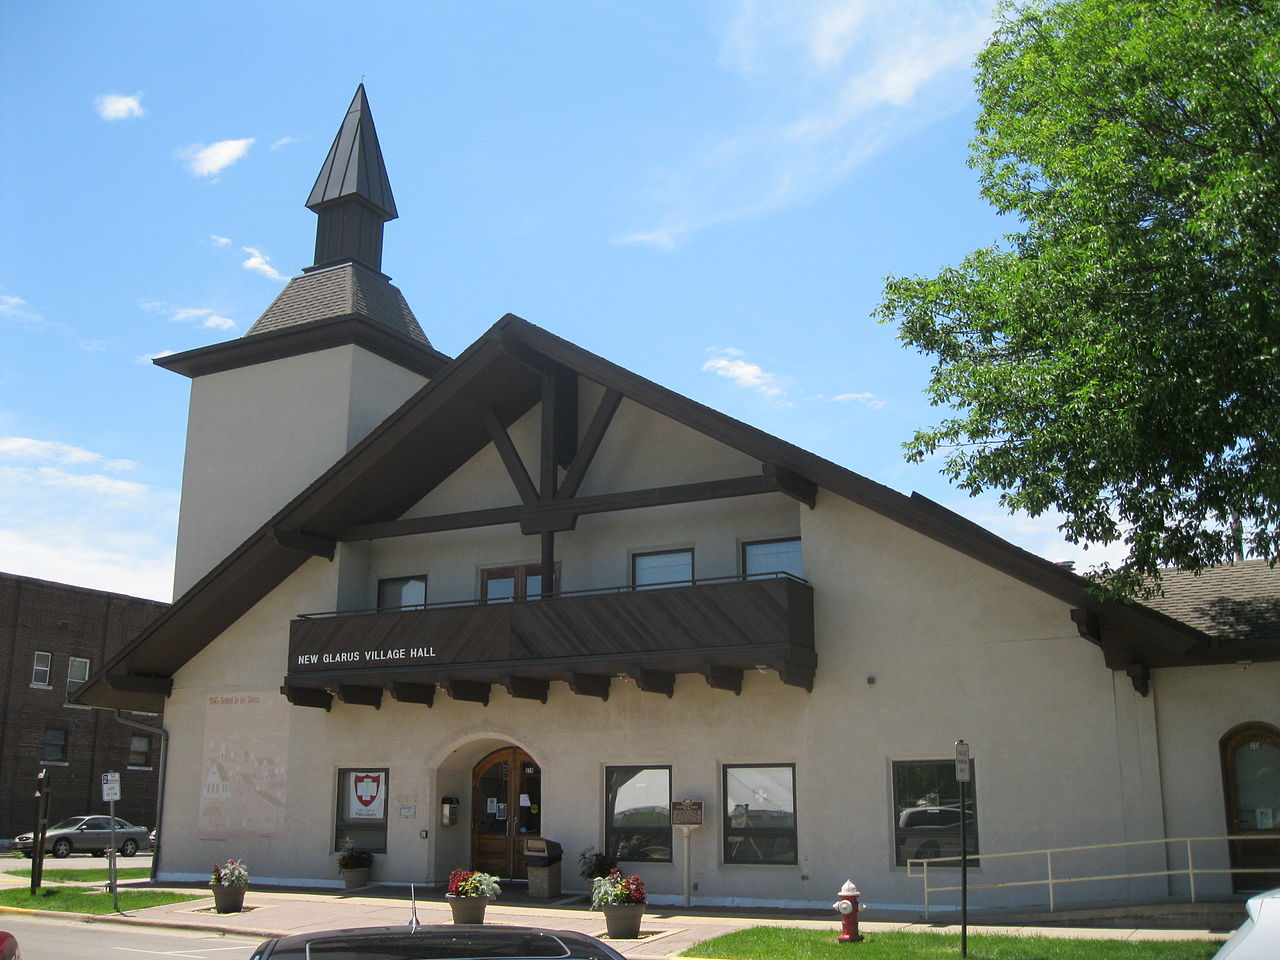 New Glarus Village Hall